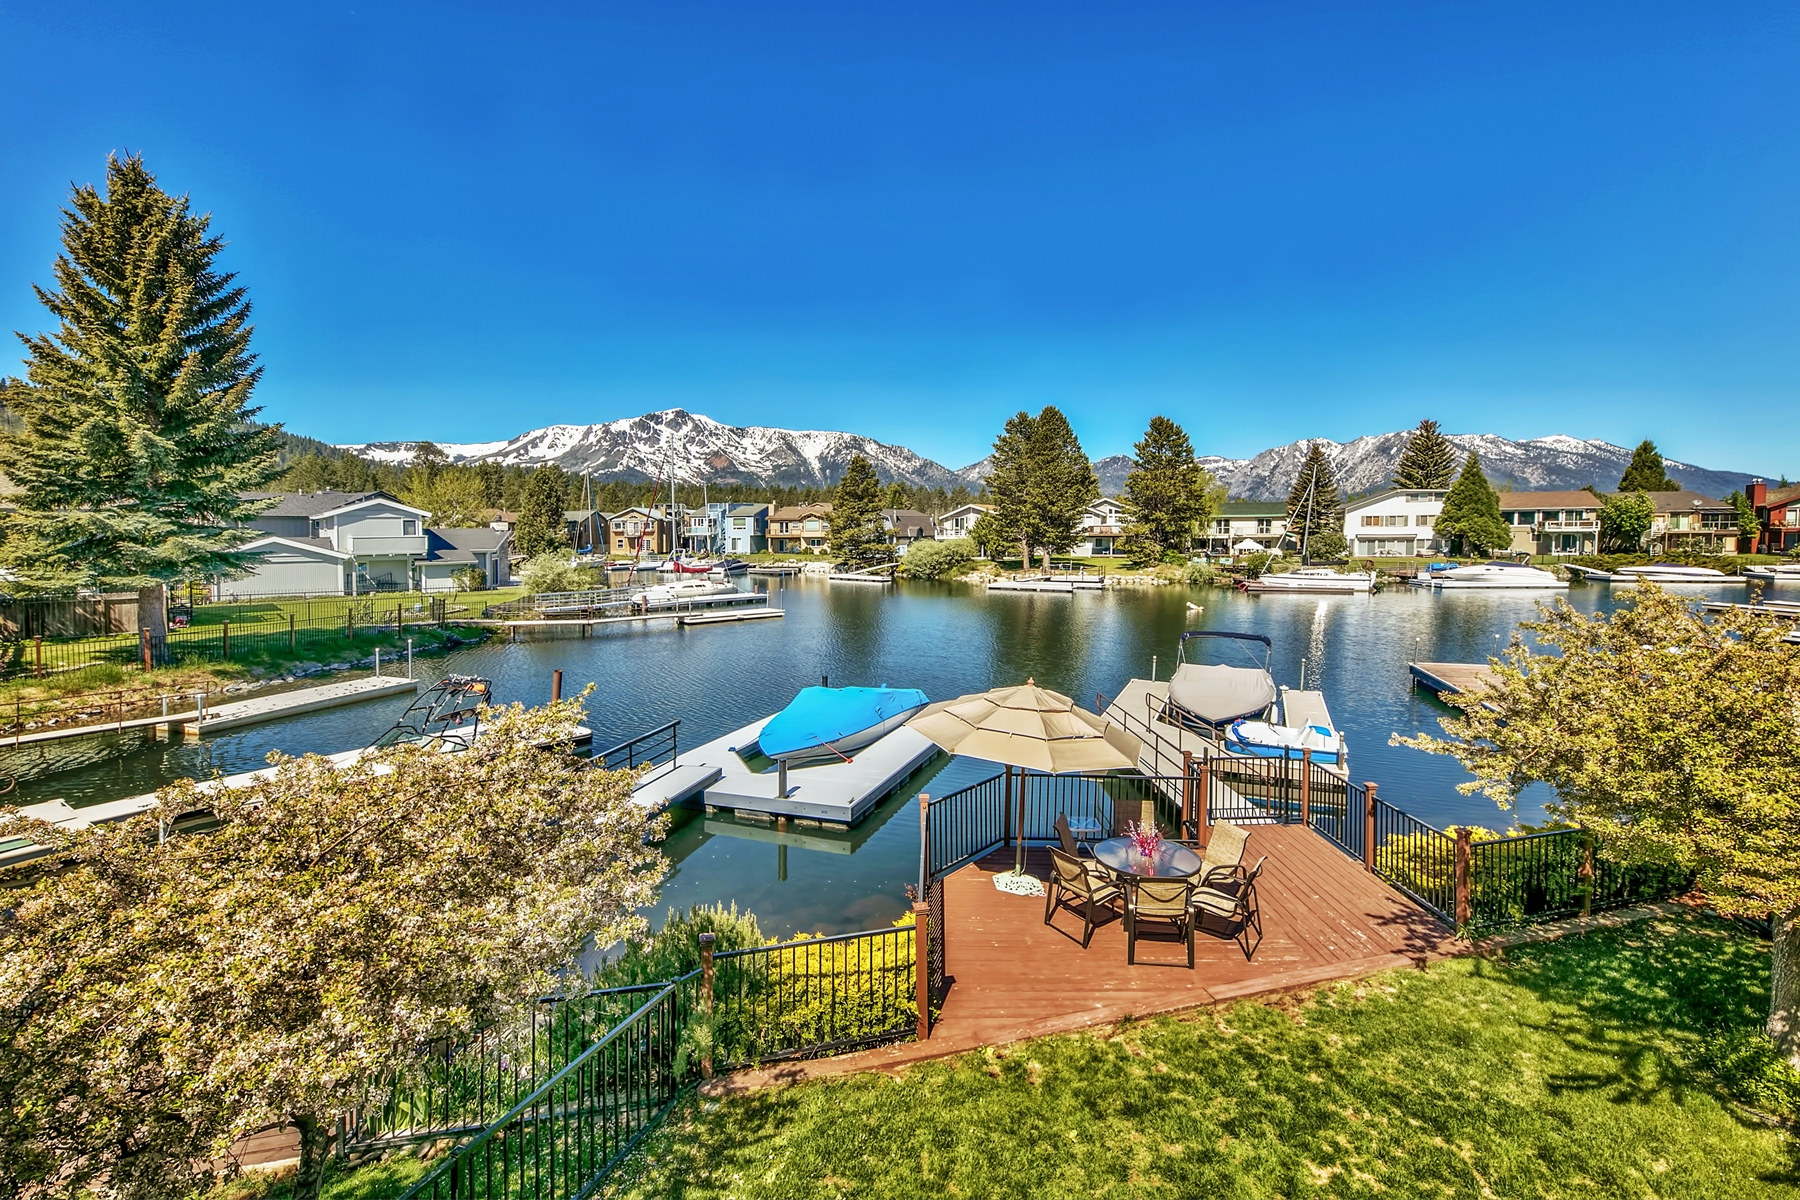 Single Family Homes for Active at 560 Alpine Drive, South Lake Tahoe, CA 96150 560 Alpine Drive South Lake Tahoe, California 96150 United States